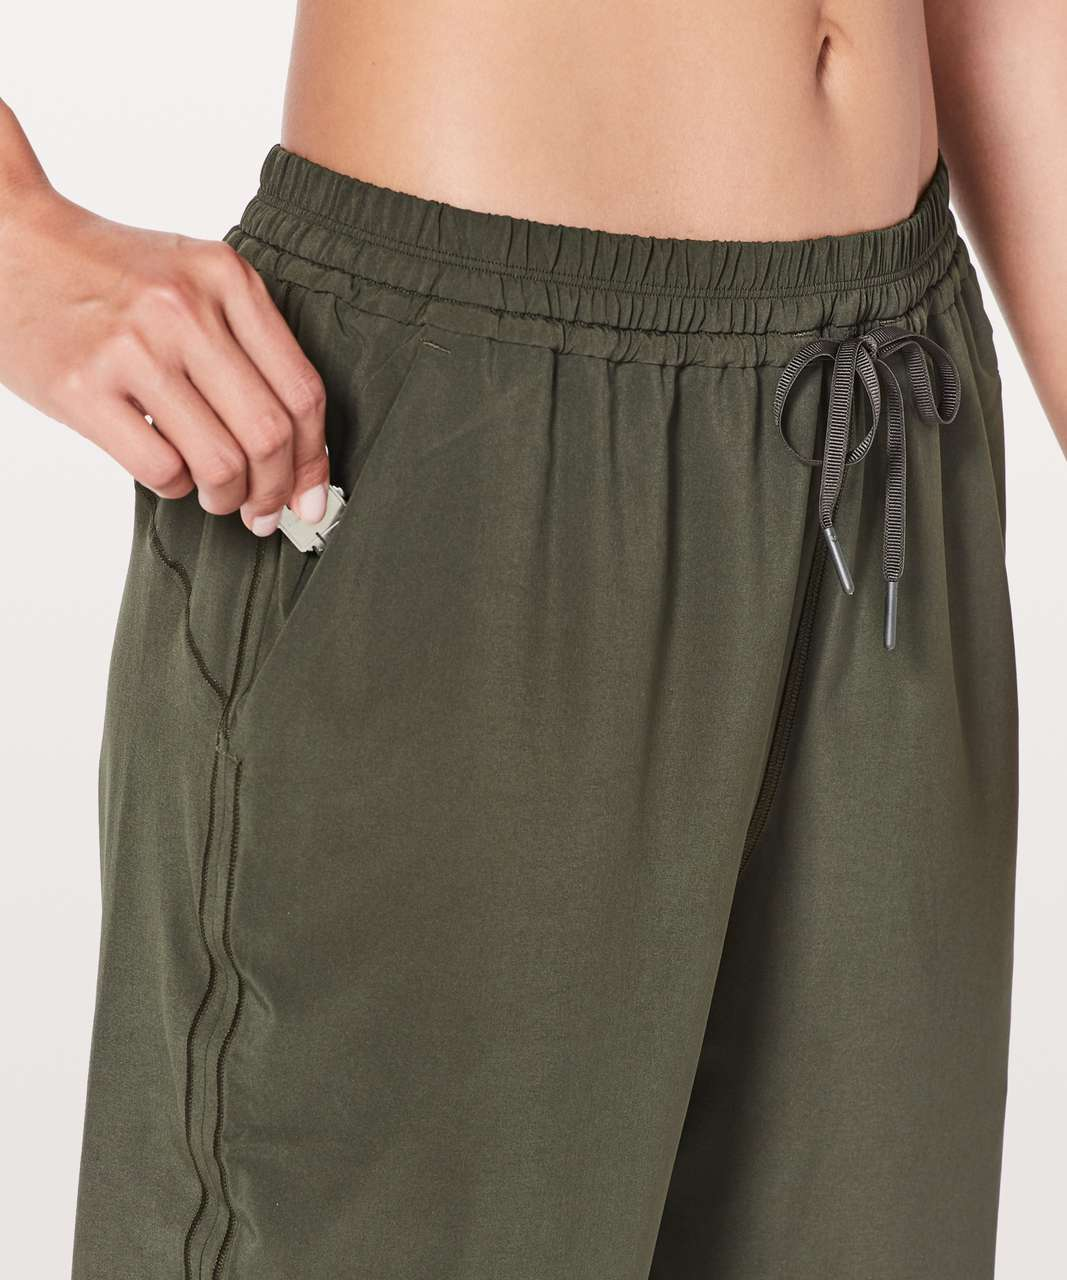 "Lululemon Keep It Classic Crop *23"" - Dark Olive"